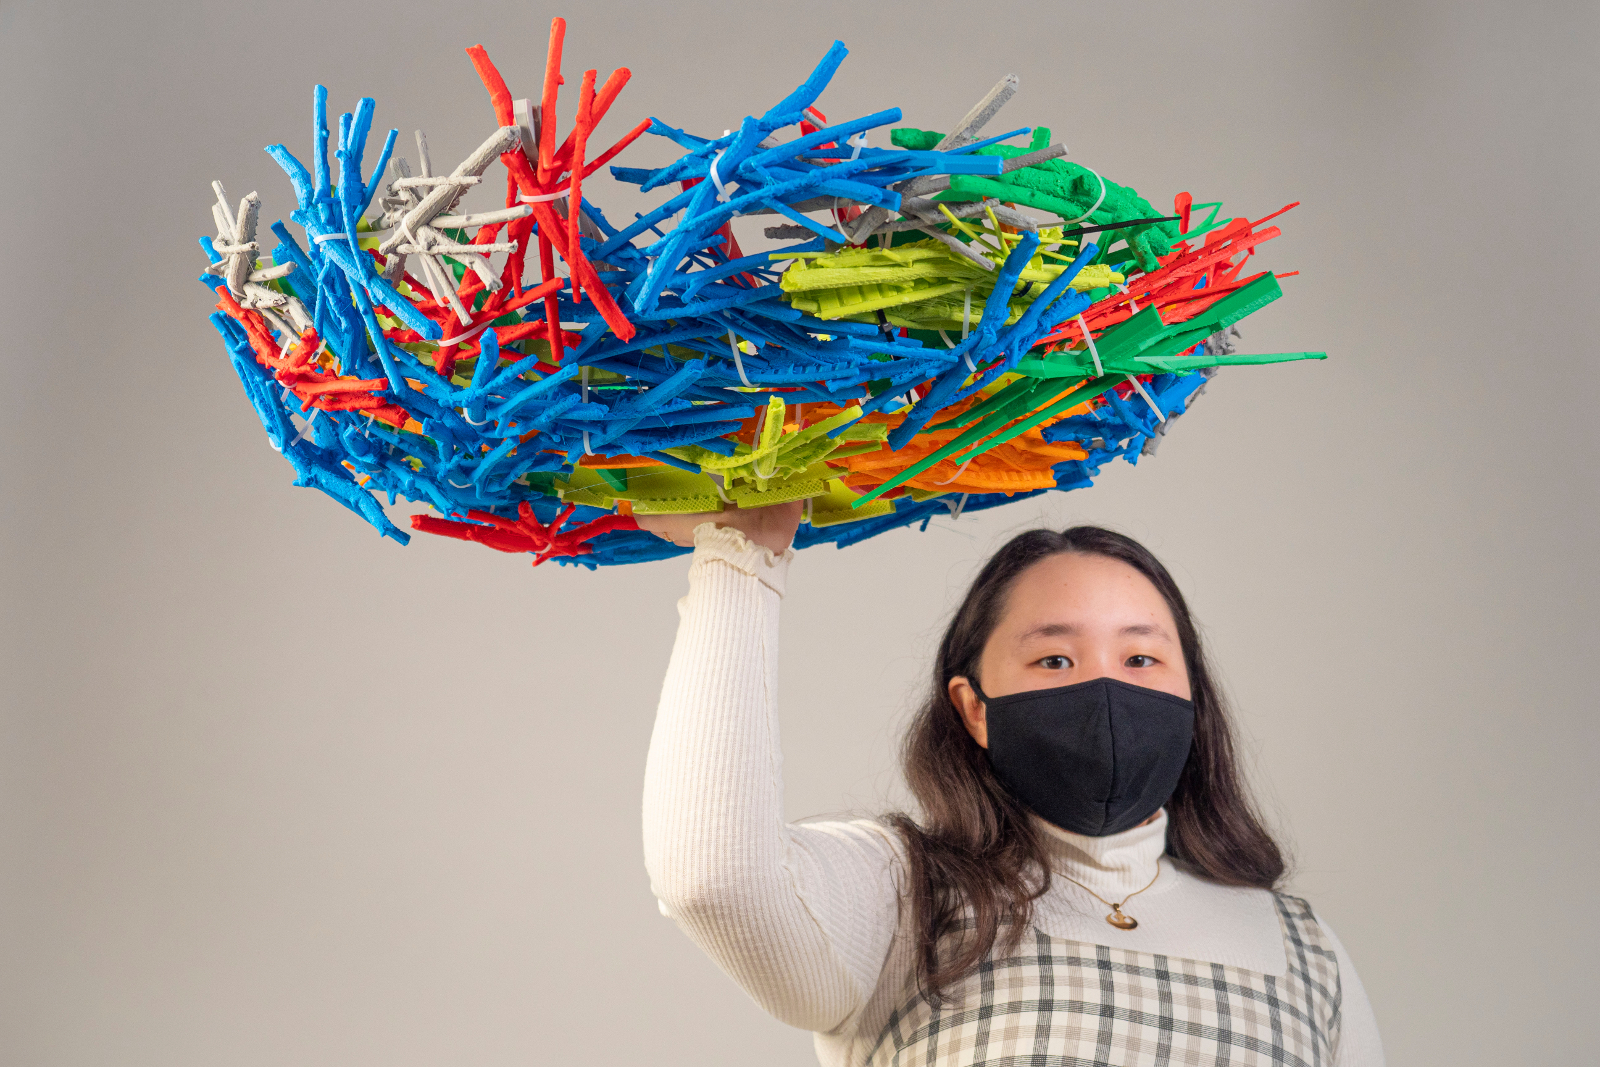 A young woman holding a large, multi-colored, plastic nest